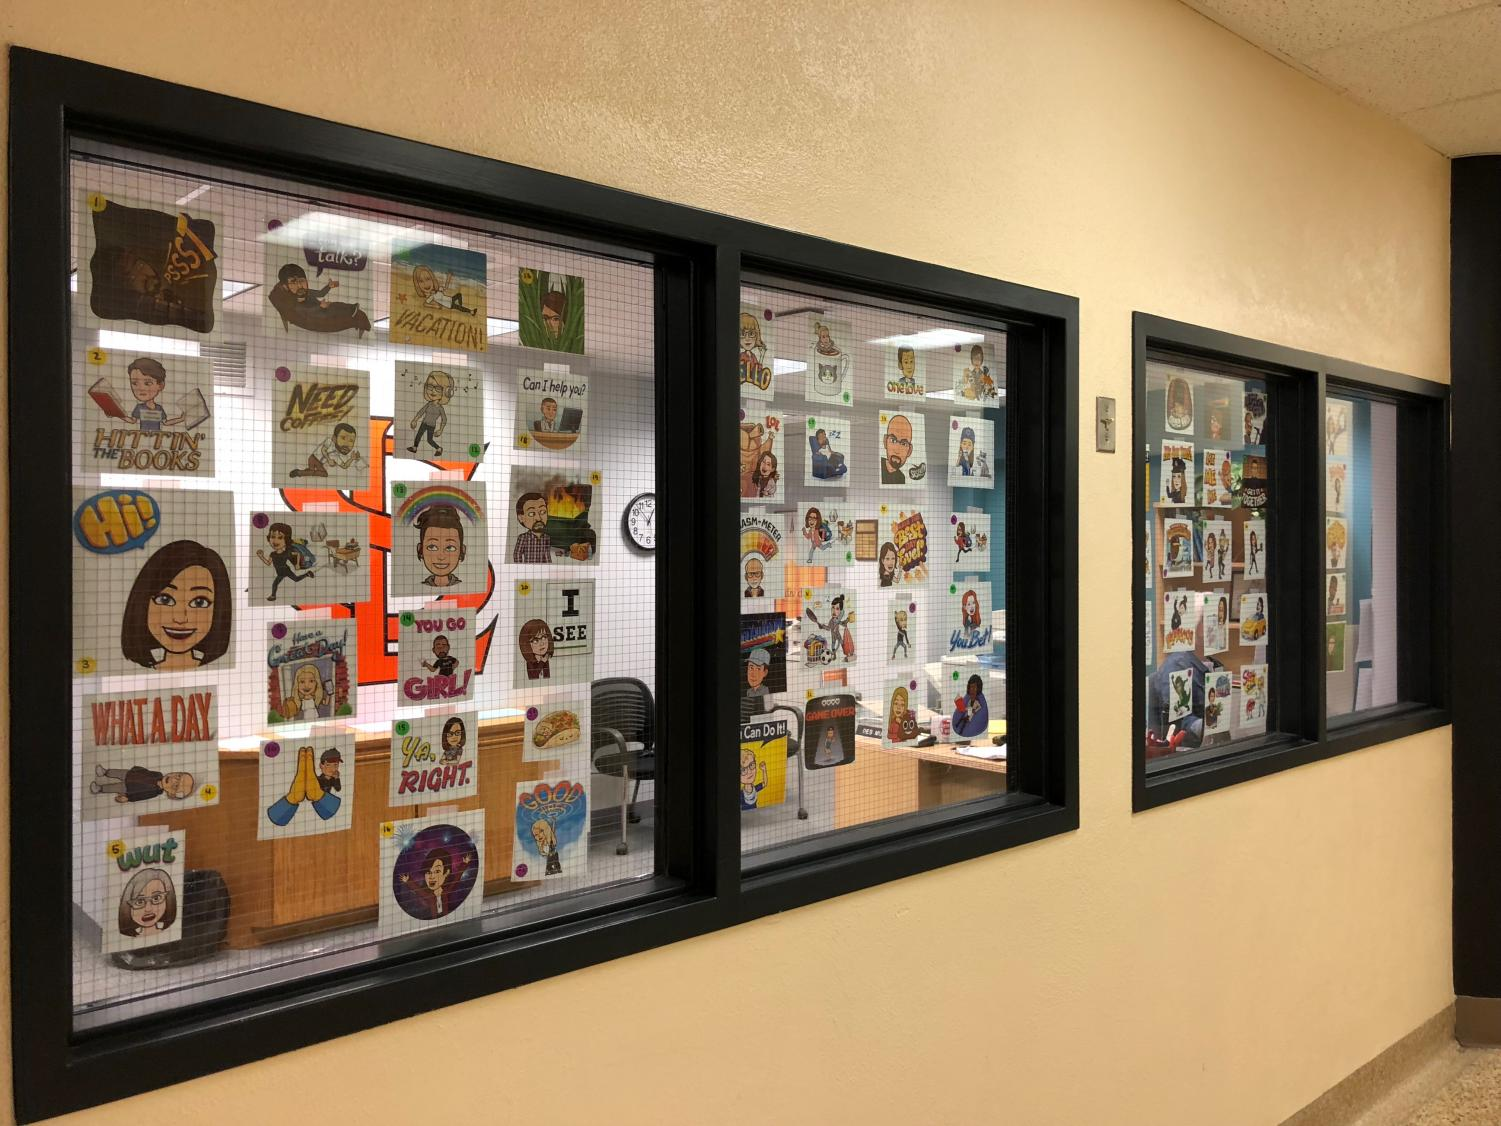 Teachers and staff members created Bitmojis representing themselves. The Bitmojis were posted on the windows of the principal's office. Students are encouraged to match the staff member caricature with their name.